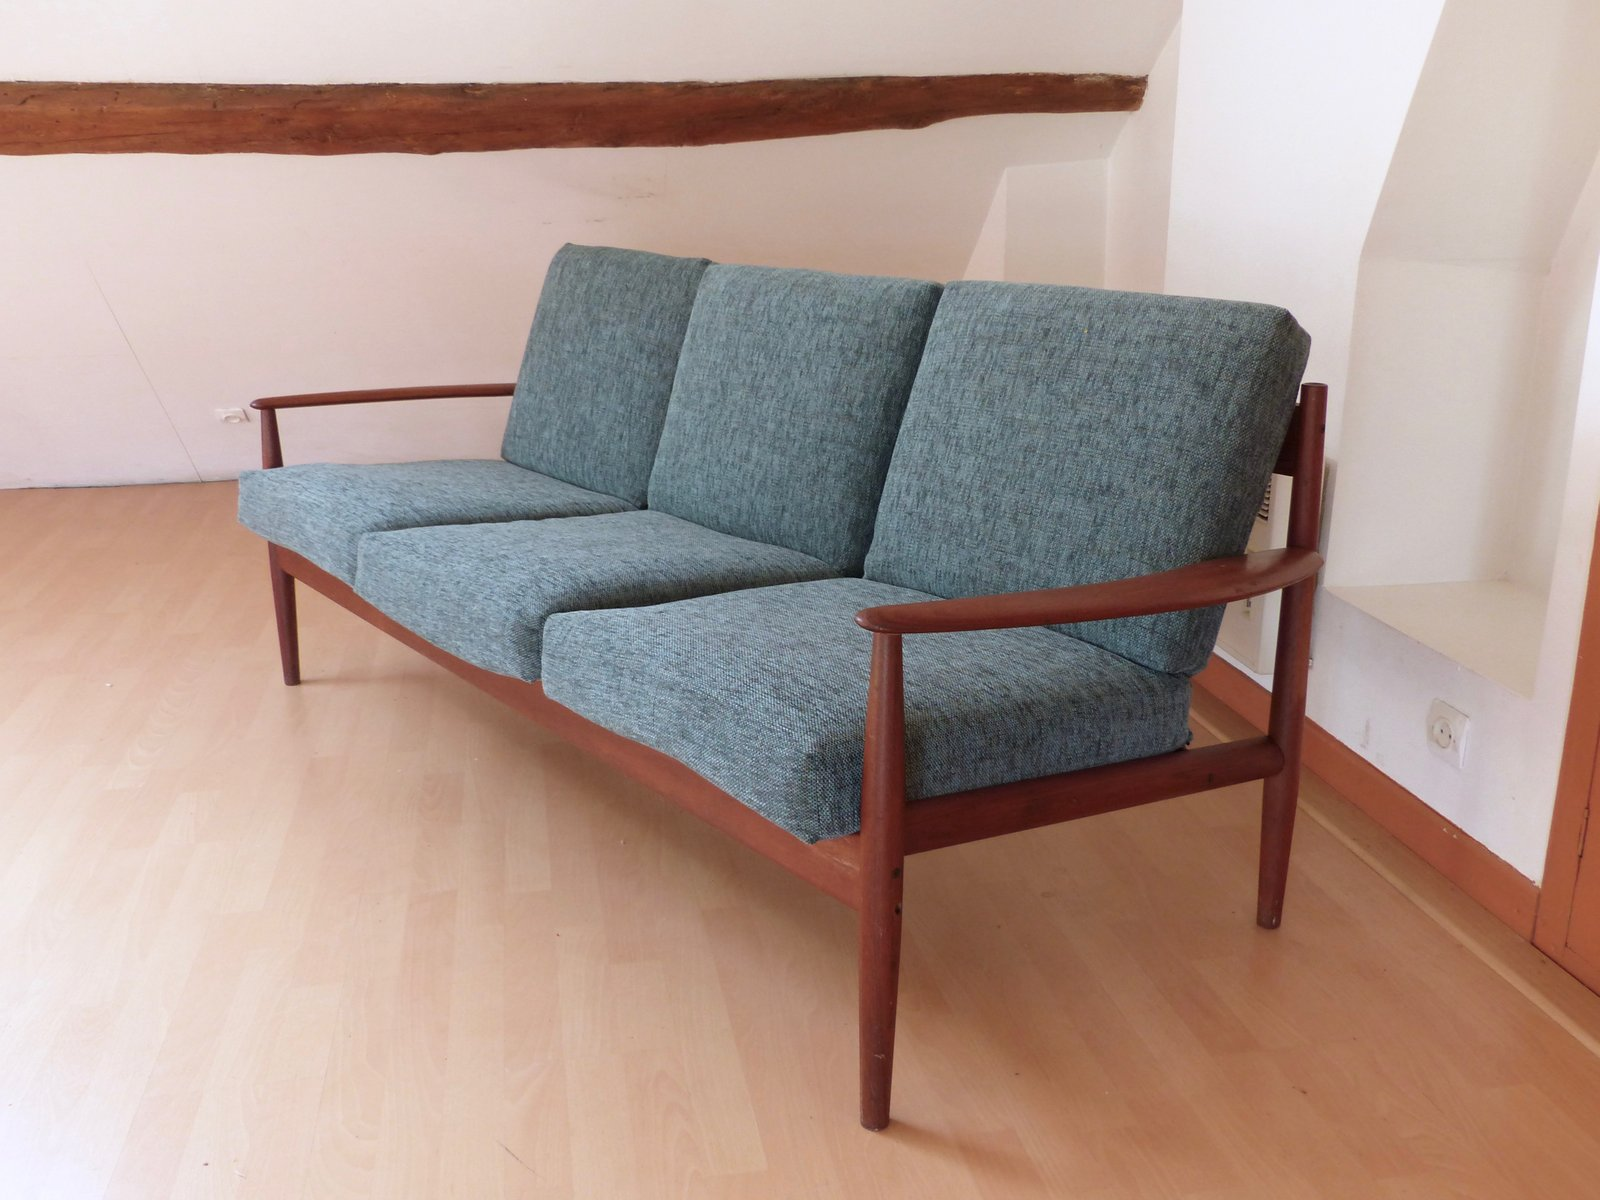 Model 118 Scandinavian Teak Sofa By Grete Jalk For France S N 1960s For Sale At Pamono